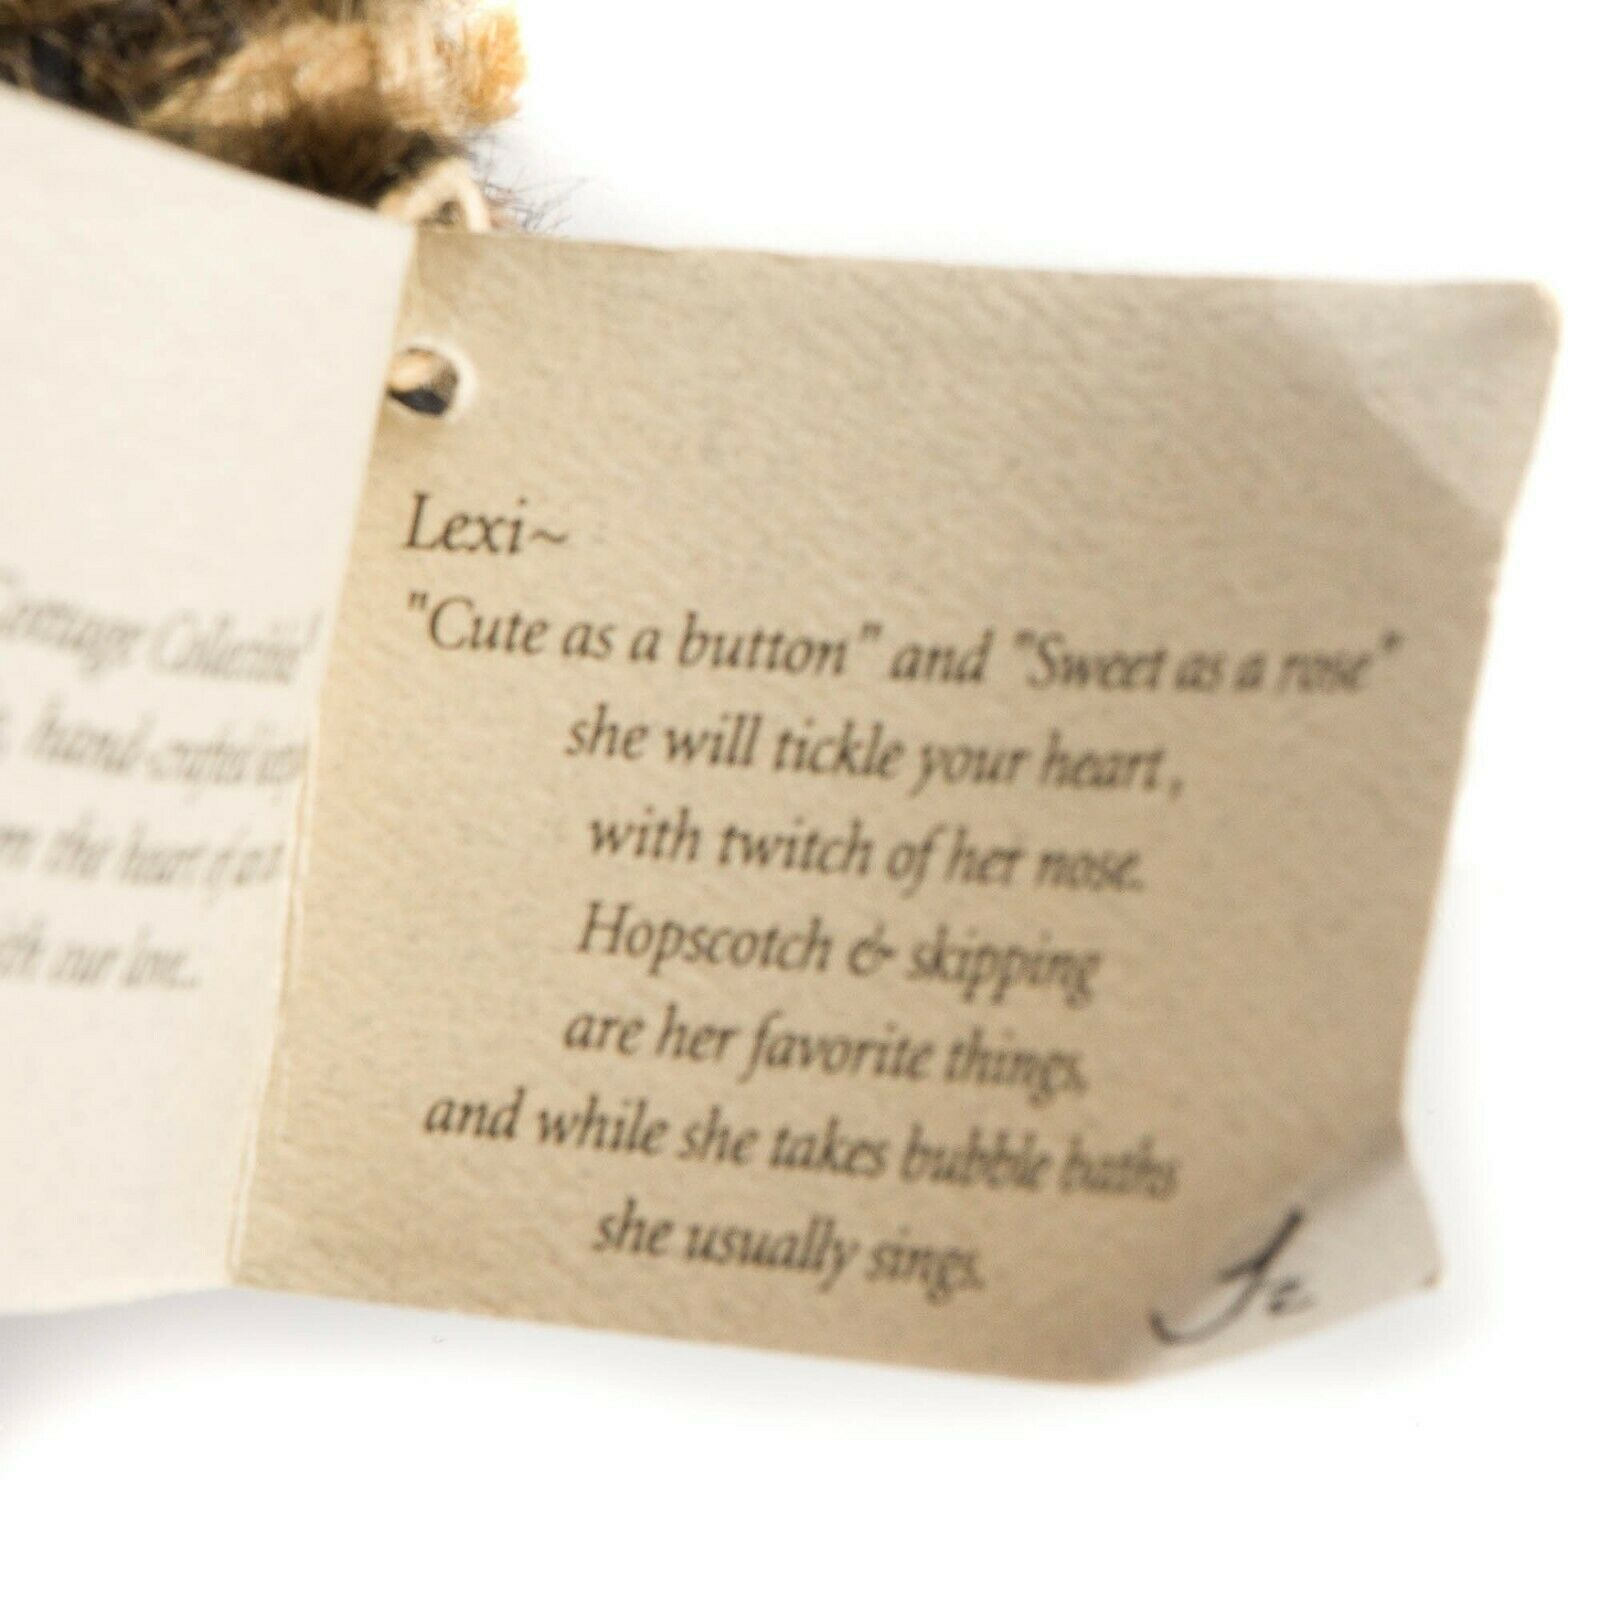 """Ganz Cottage Collectibles Lexi Teddy Bear 11"""" First Edition Scarf Tag CC1801 image 6"""